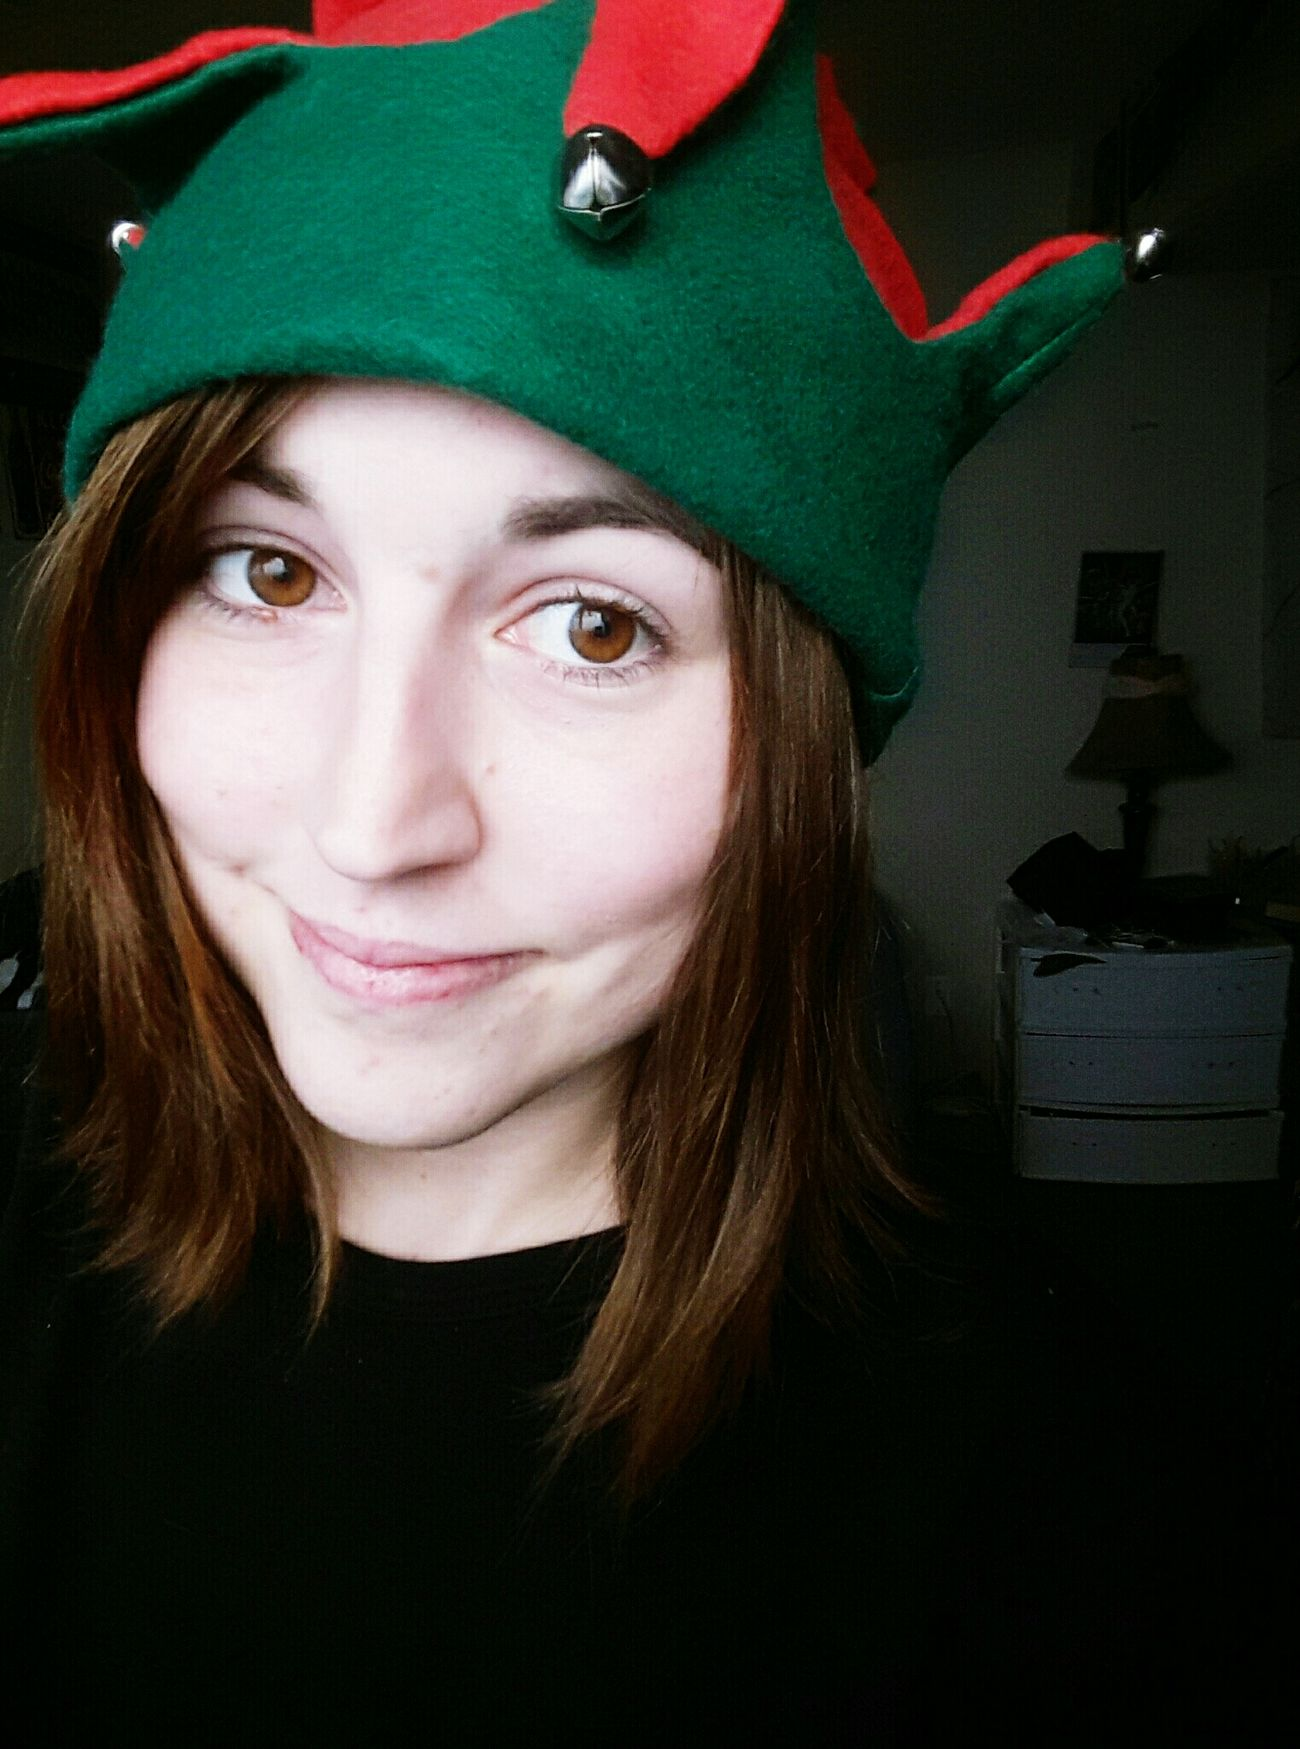 One month until Christmas! 🎅🎄❤️ Portrait Looking At Camera Green Color Headshot Only Women Smiling One Person One Woman Only People Red Color Close-up Indoors  Day Adult Adults Only Elf Hat Elf Christmas Festive Christmas Cheer Christmas Spirit Self Portrait Christmas Selfie